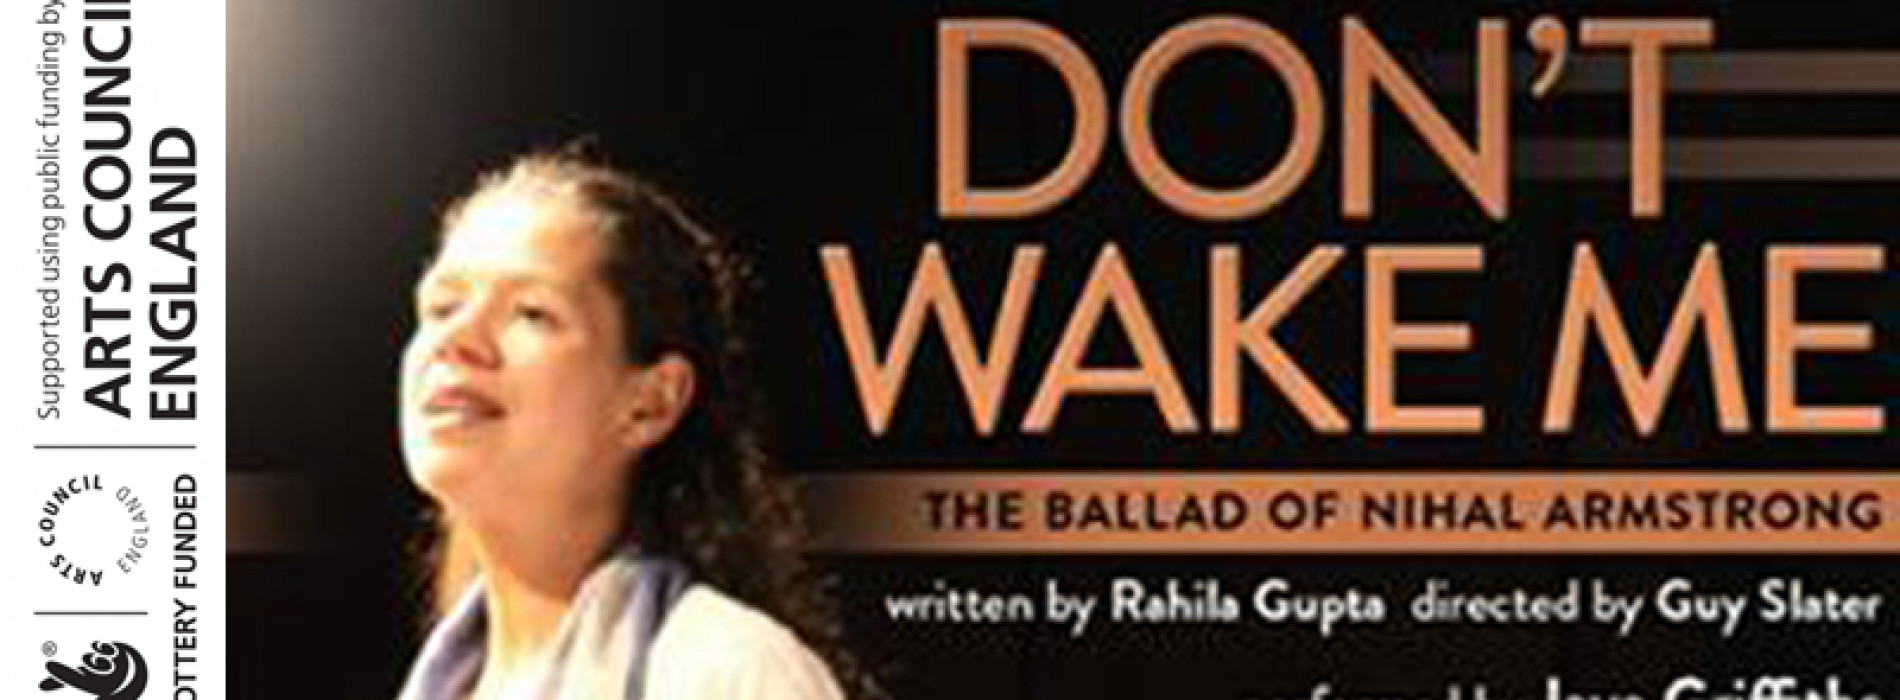 Don't Wake Me: The Ballad of Nihal Armstrong at the Cockpit Theatre